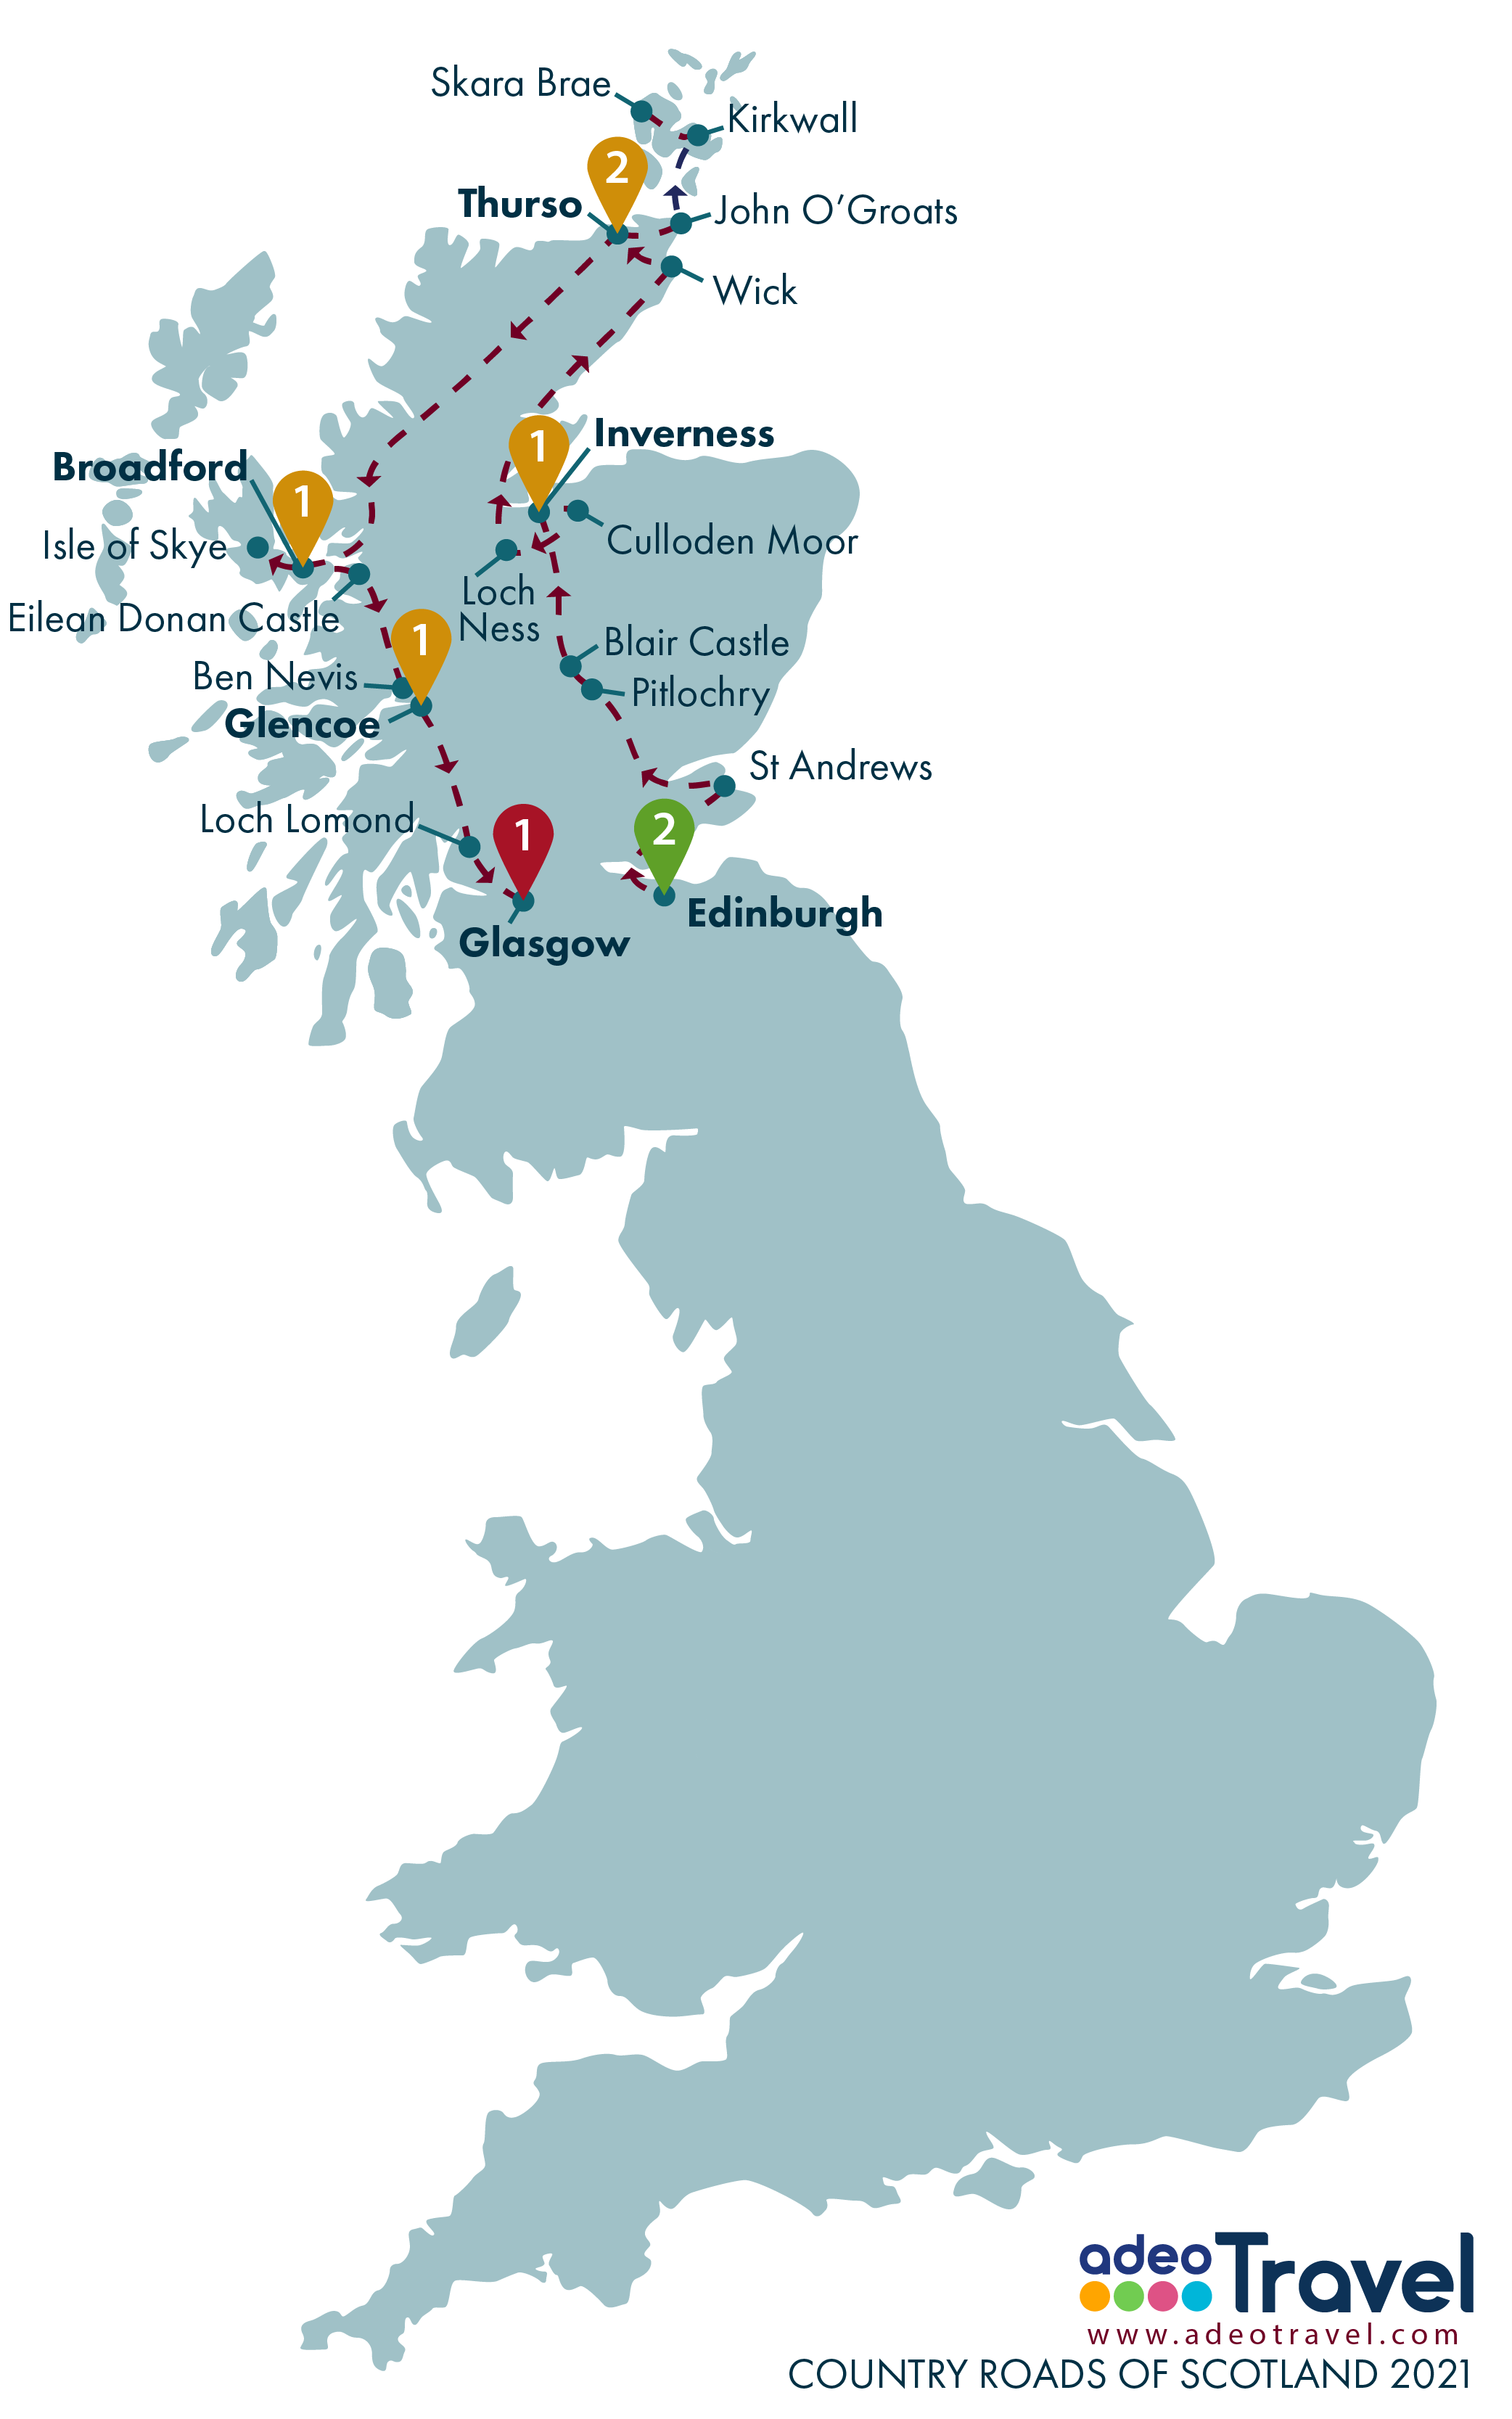 Map - Country Roads of Scotland 2021